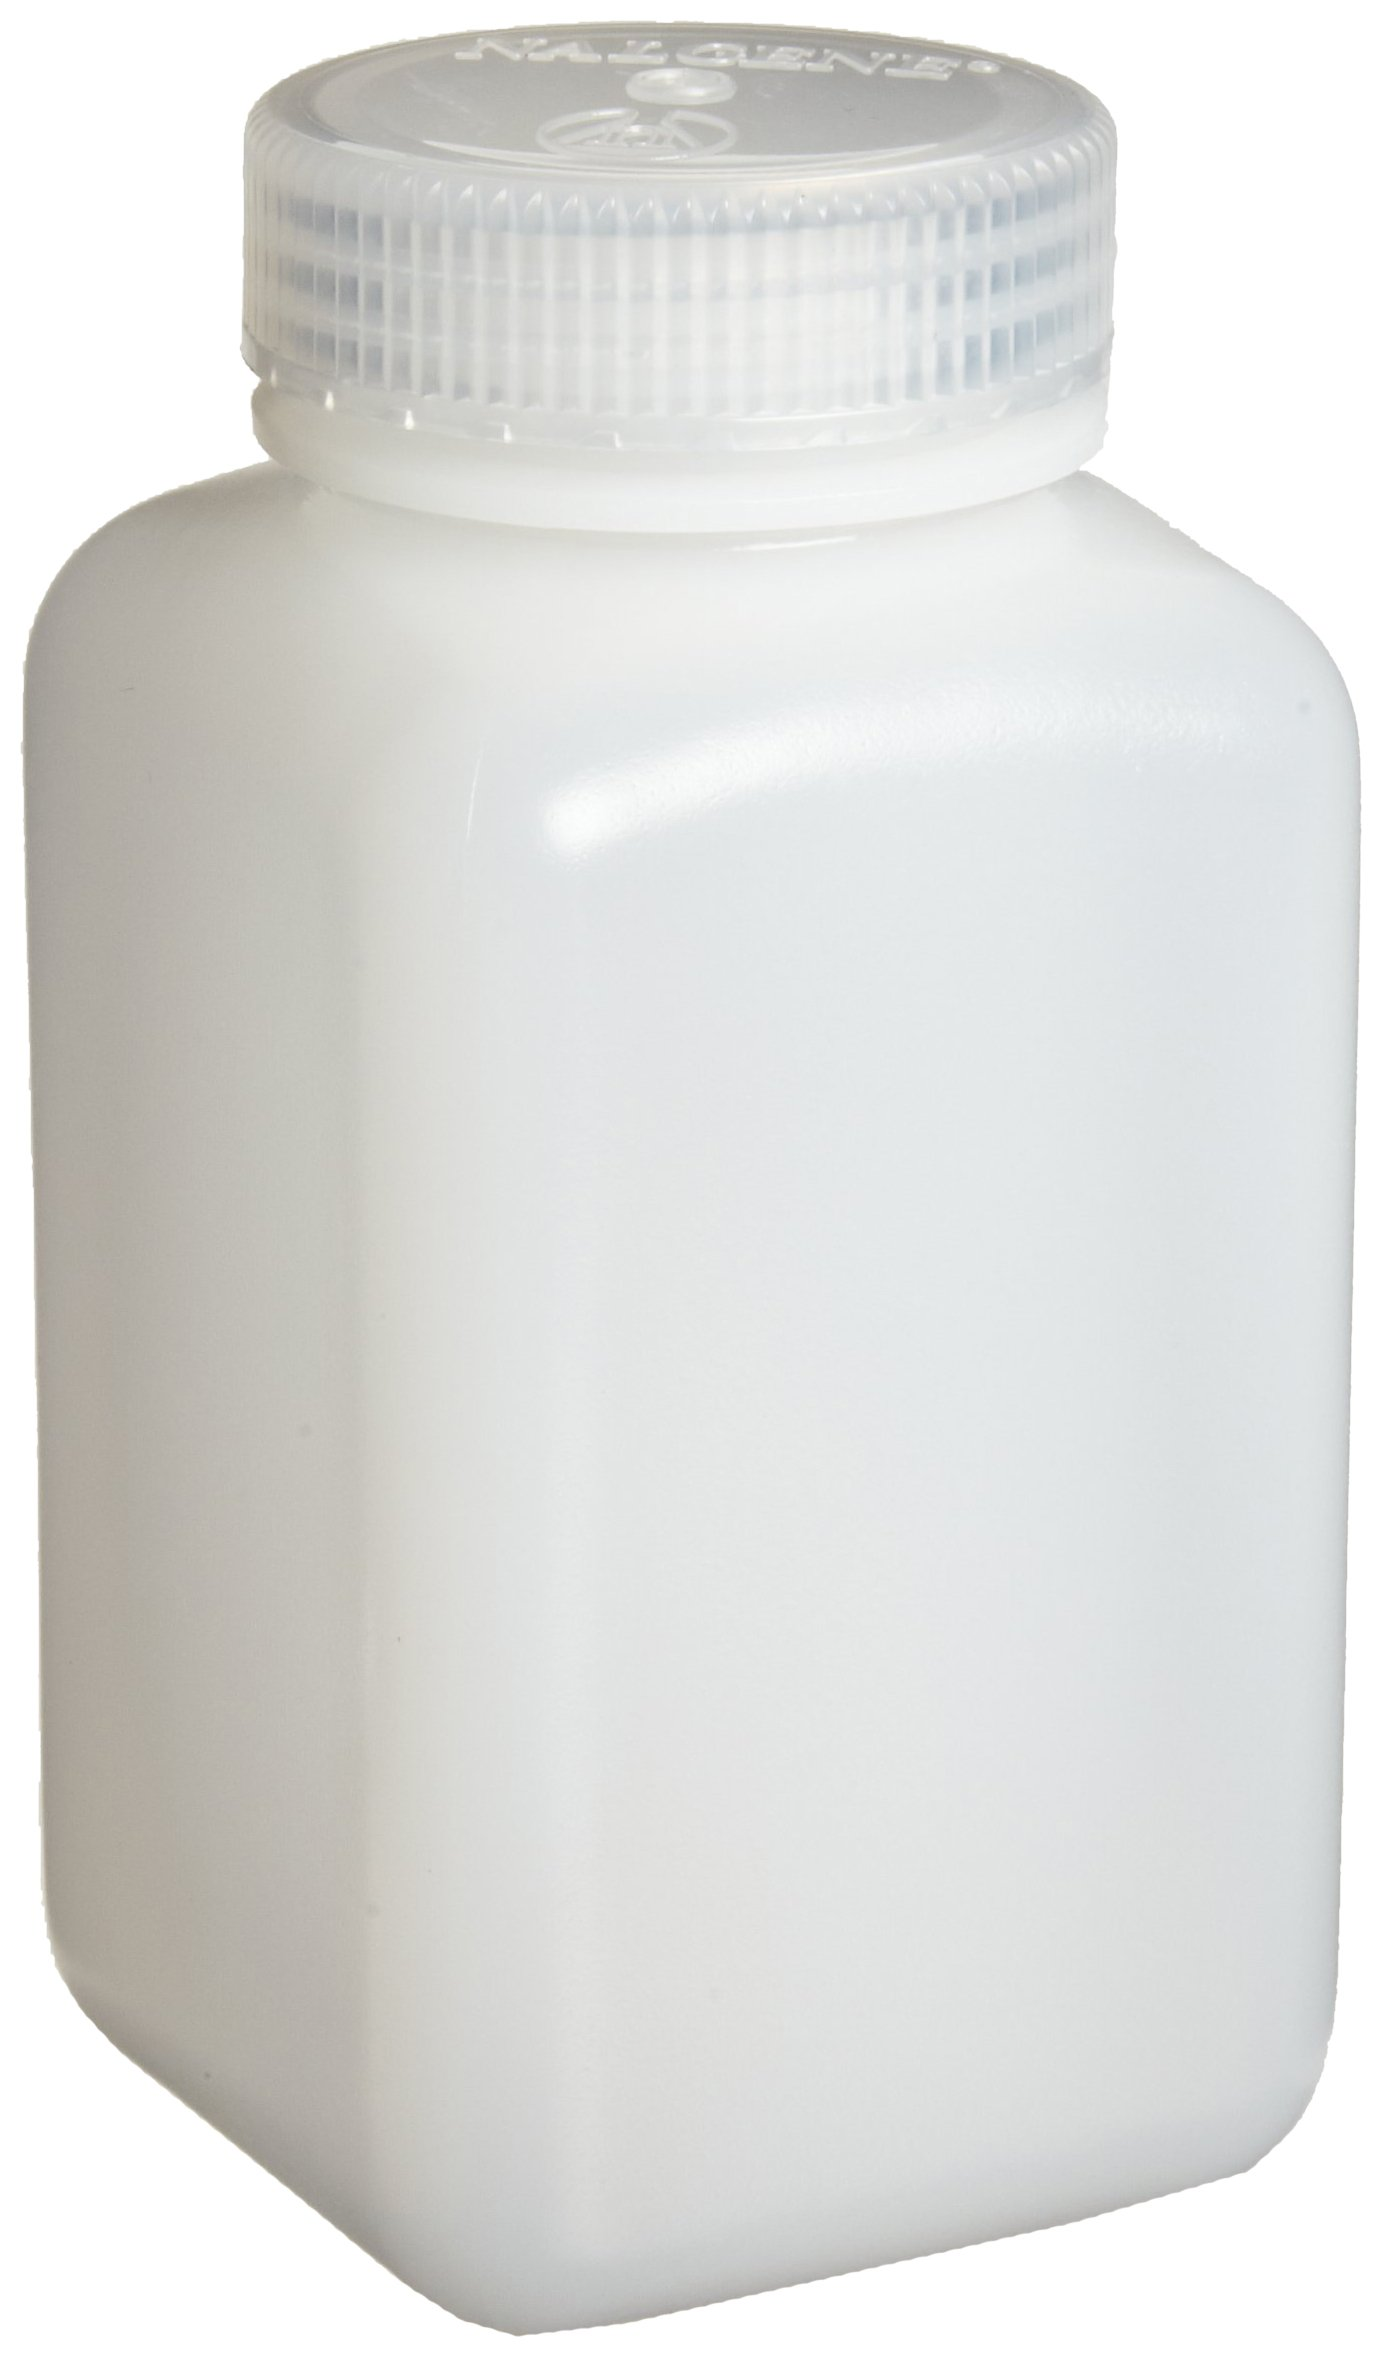 Nalgene 2114-0032 Square Bottle, Wide-Mouth, HDPE, 1000mL (Pack of 6)